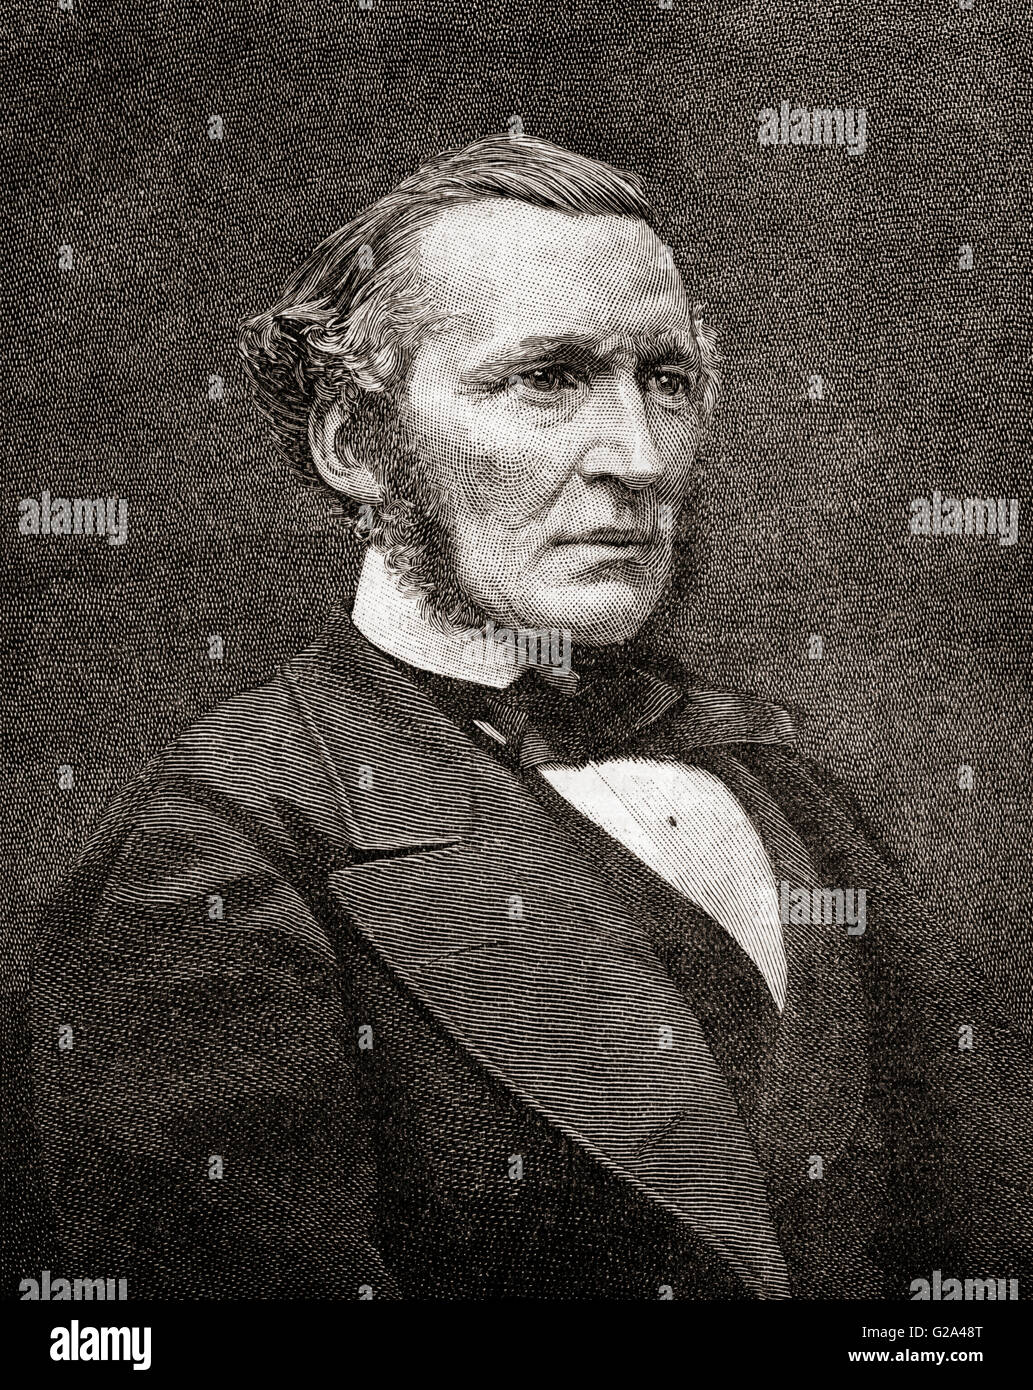 Hugh McCalmont Cairns, 1st Earl Cairns , 1819 – 1885.  British statesman, Lord Chancellor of Great Britain. - Stock Image